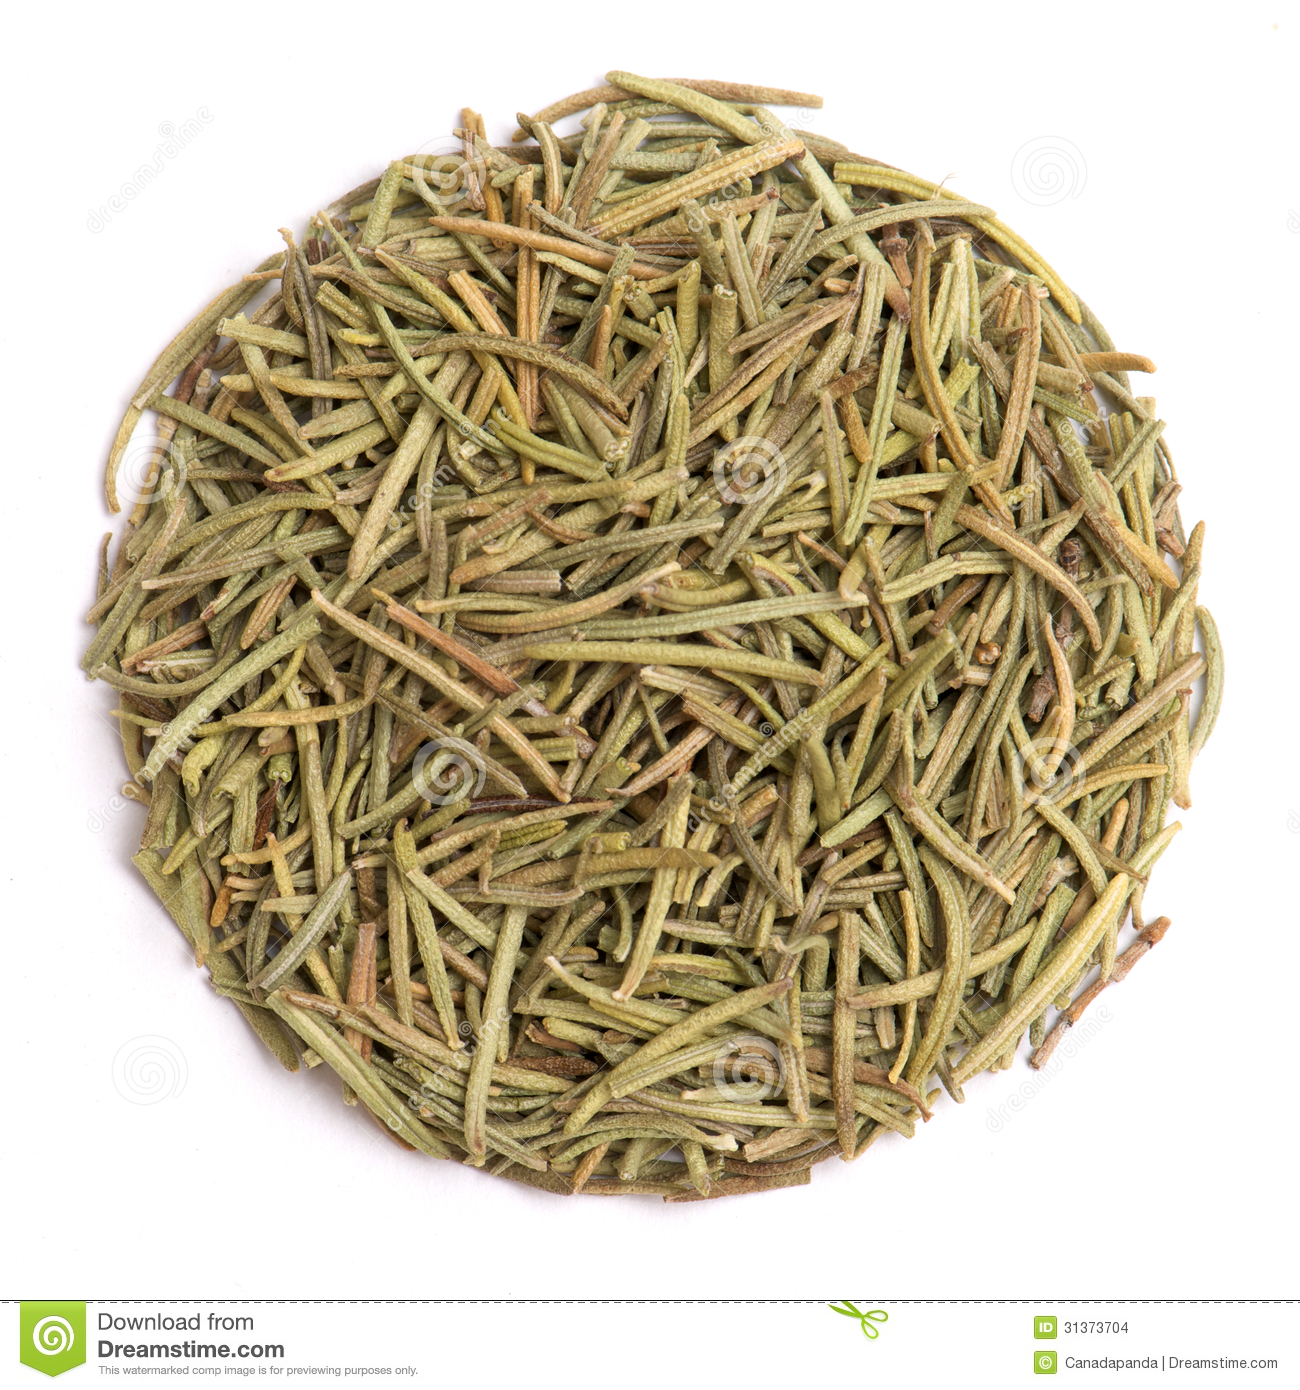 Dried rosemary leaves stock photo. Image of leaf, natural ...